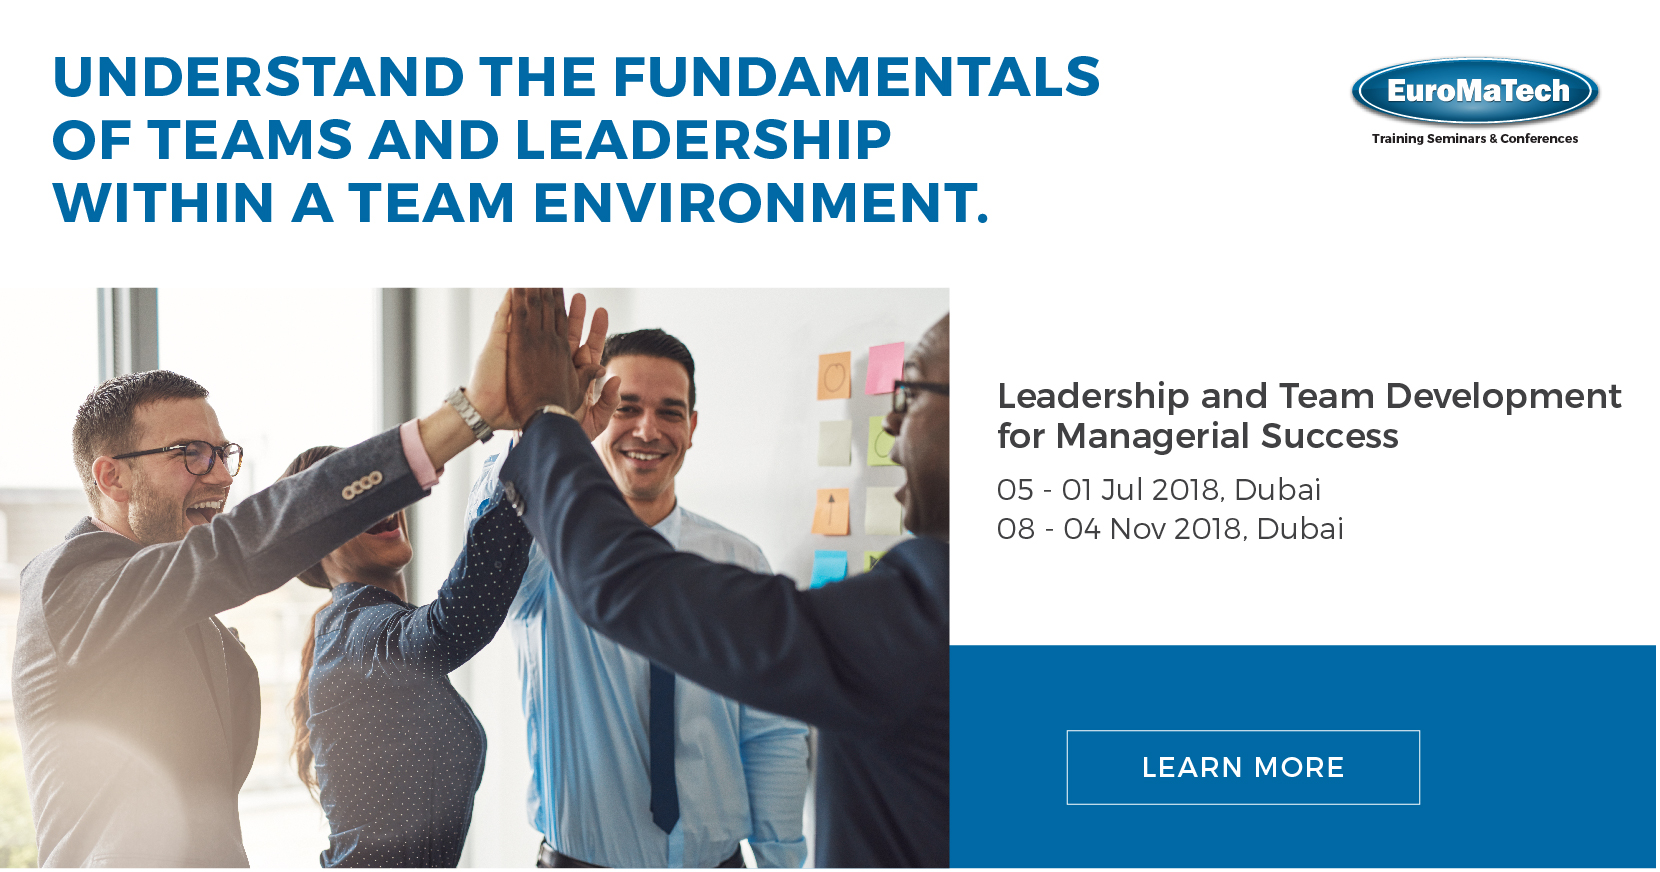 Leadership and Team Development for Managerial Success Training Course